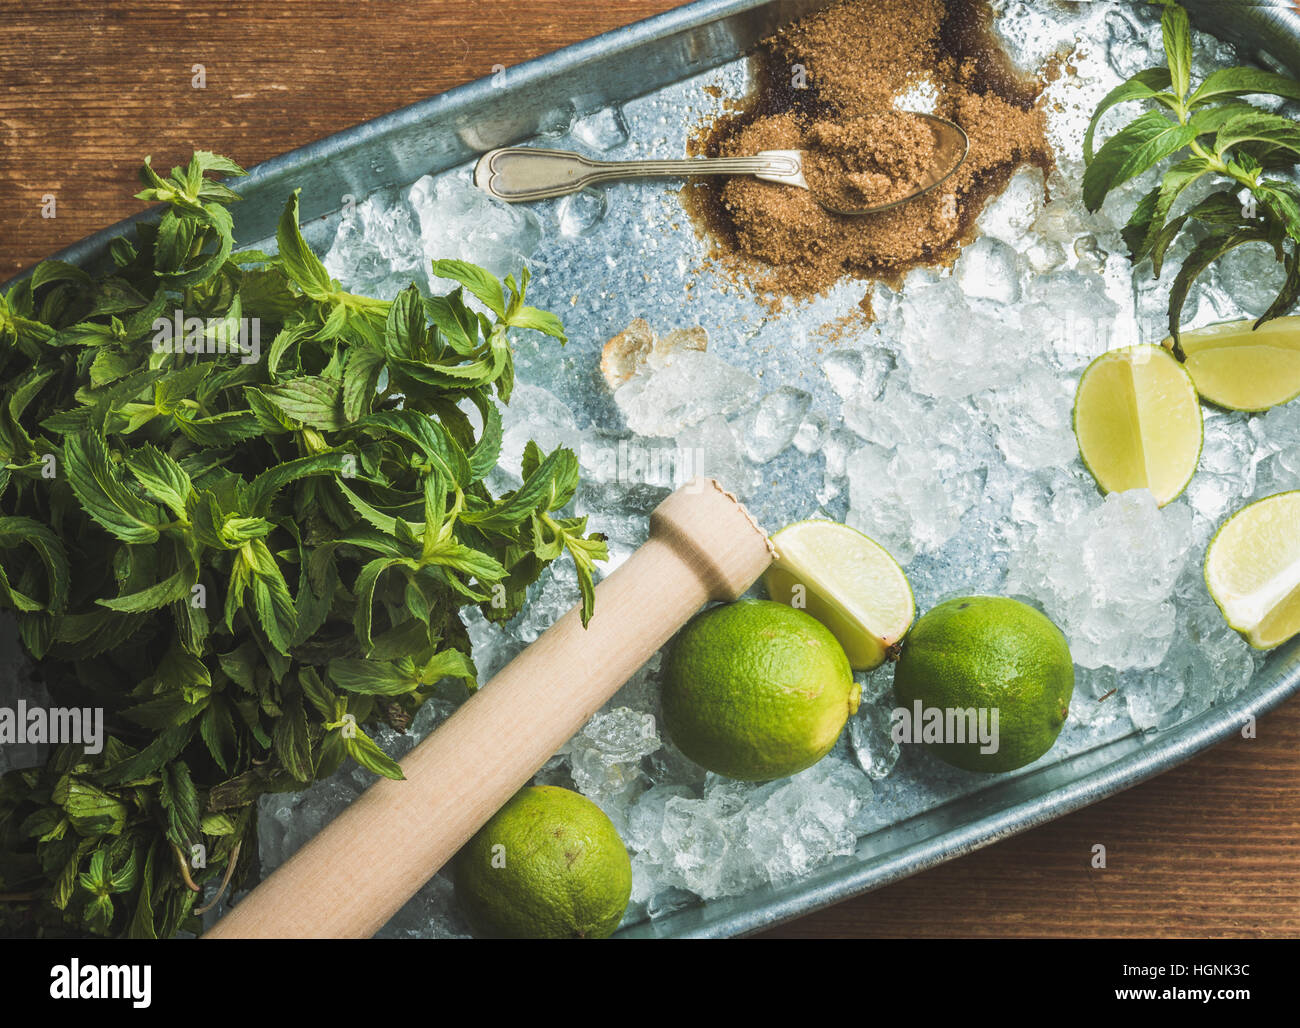 Ingredients for making mojito summer cocktail on ice in tray - Stock Image